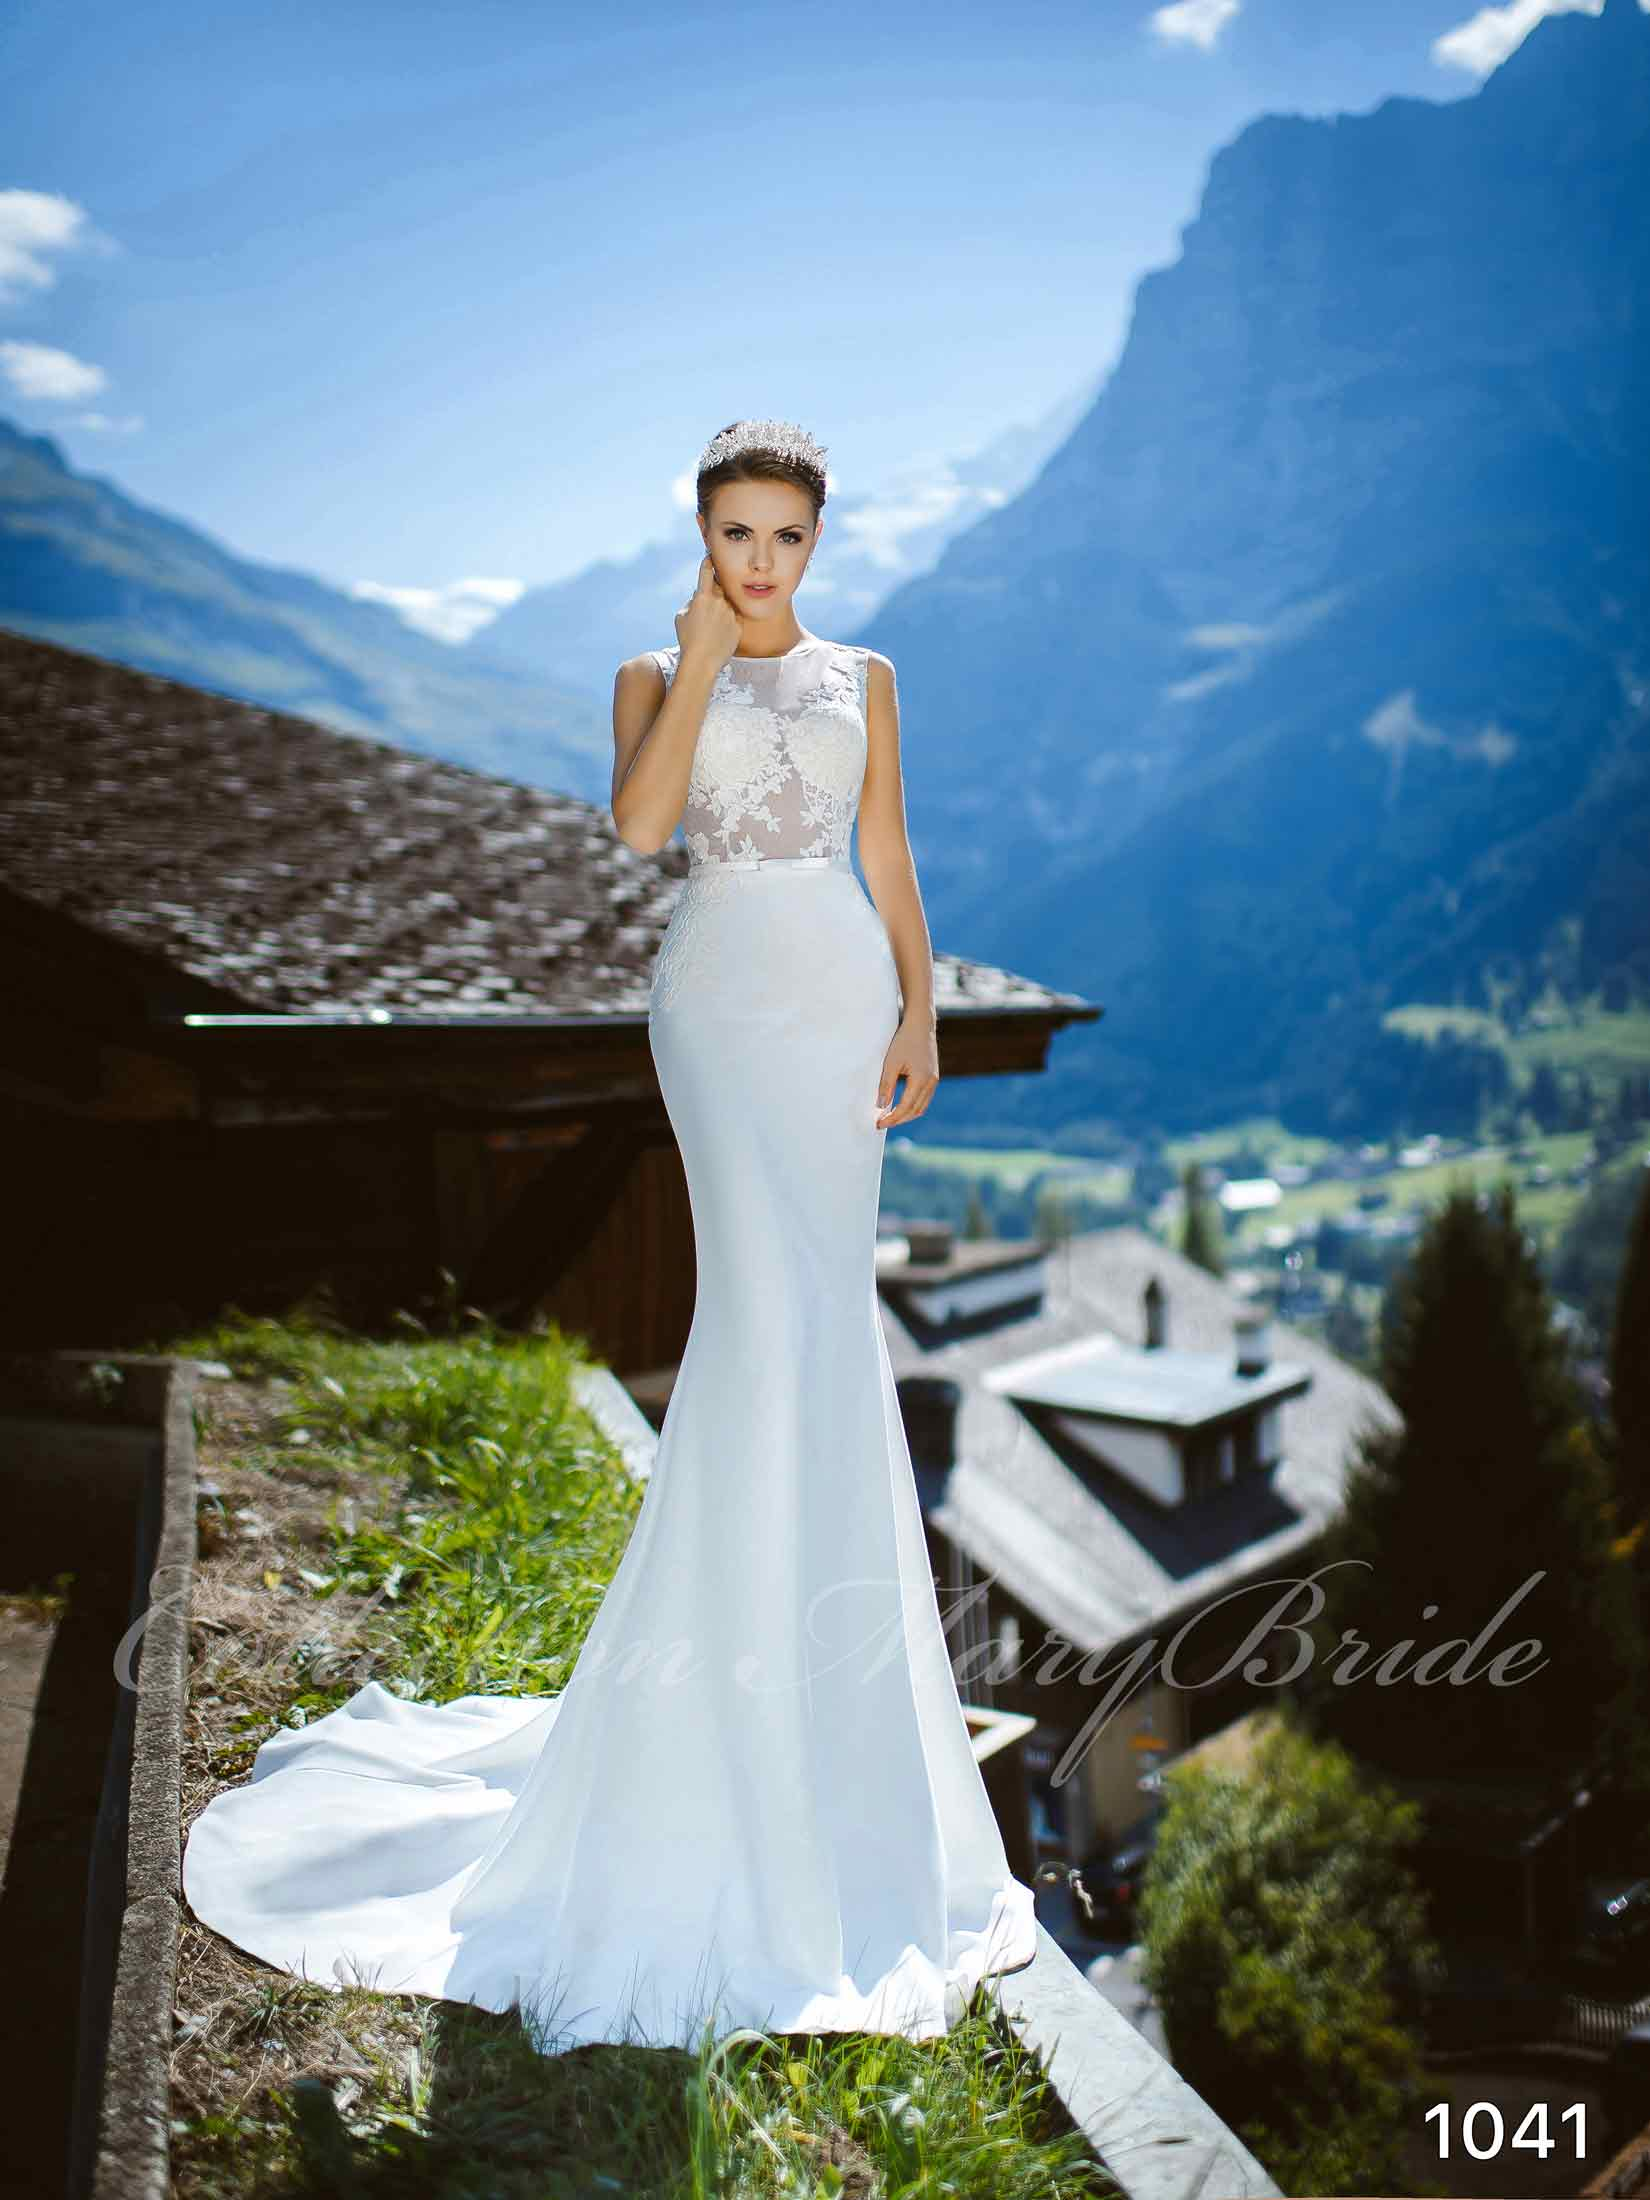 Bridal Gowns Kitchener, Waterloo, Cambridge & Destination Dresses